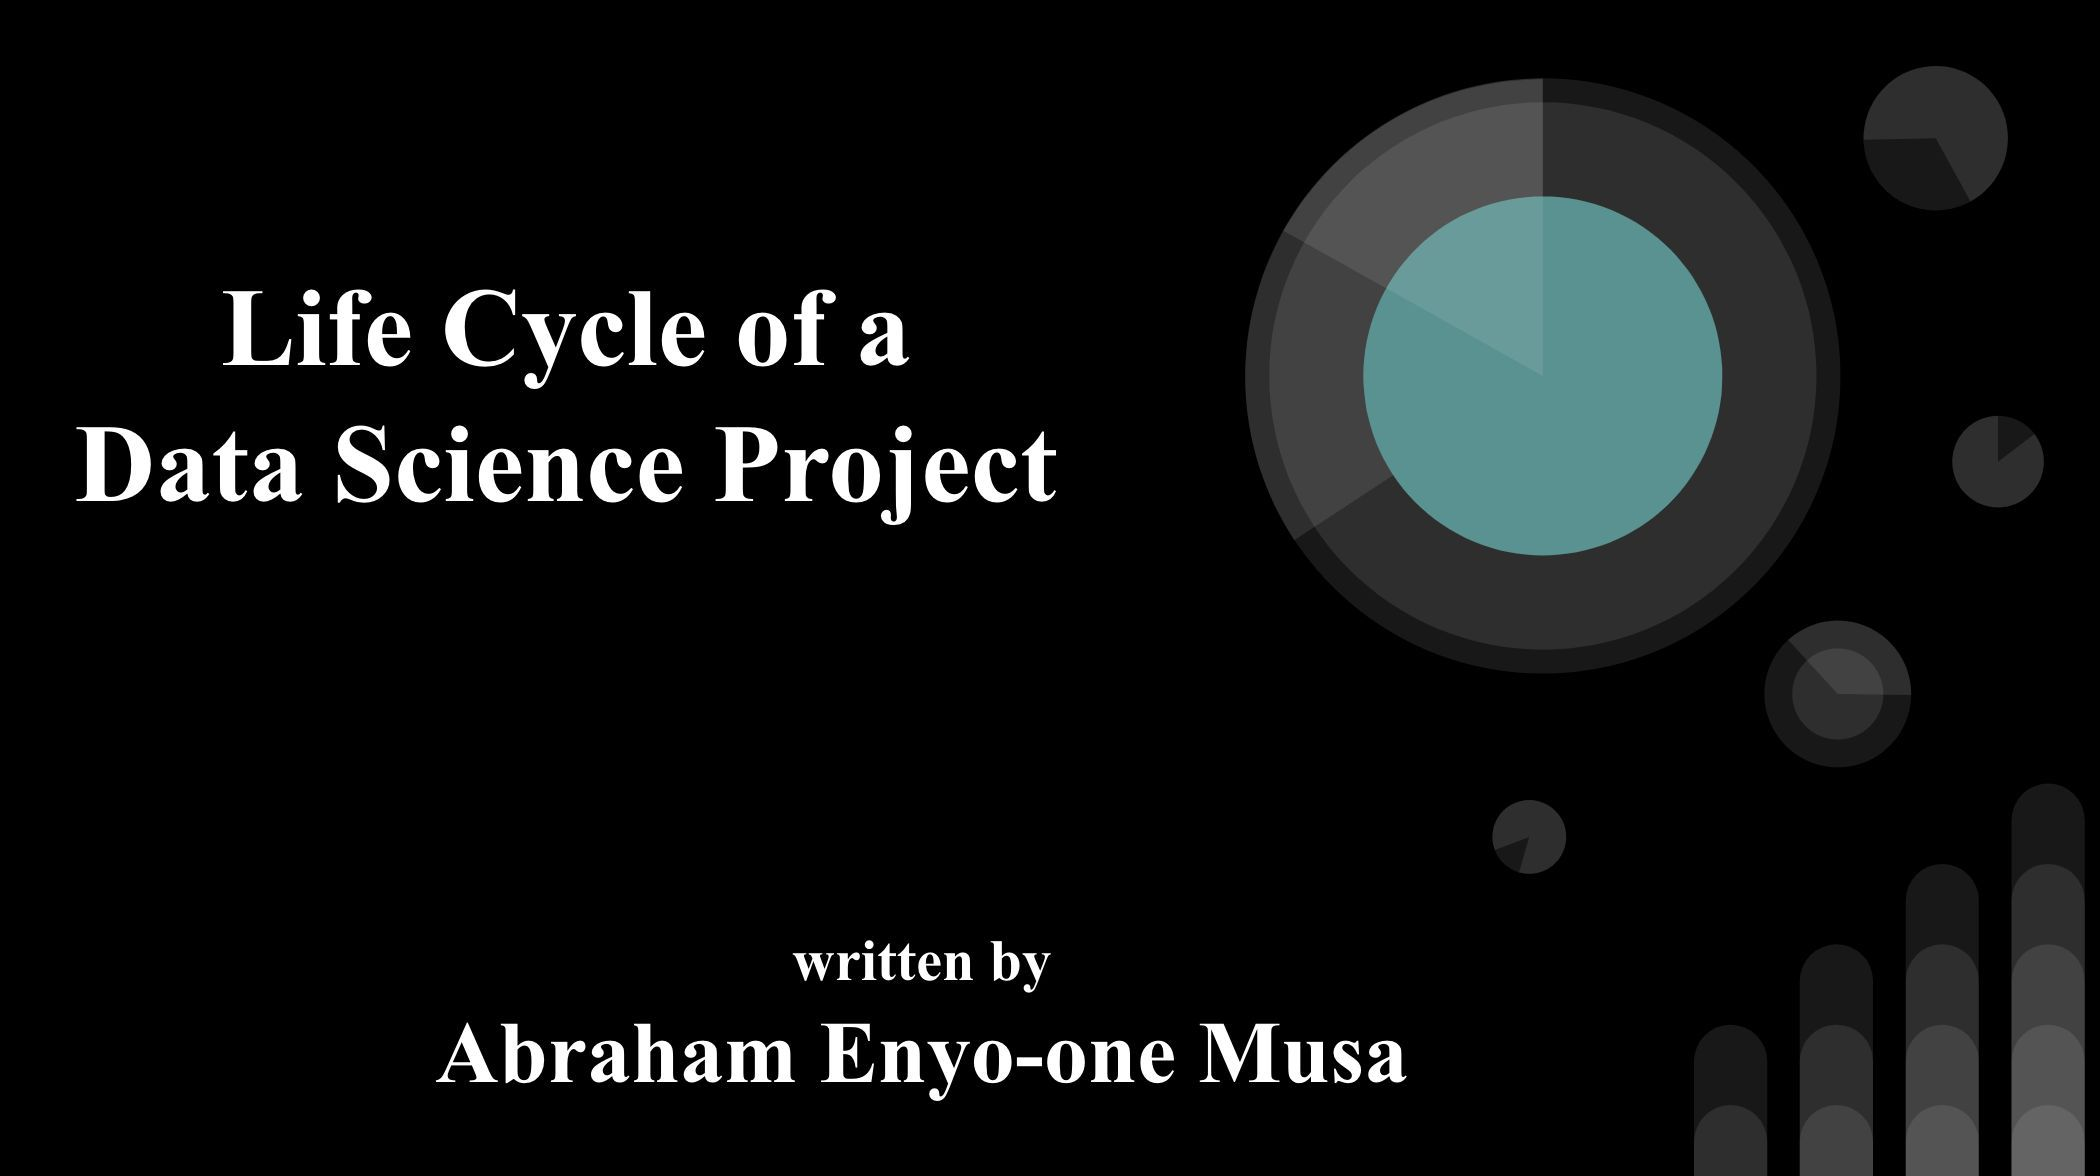 /a-brief-introduction-into-a-typical-data-science-project-life-cycle-8a1433ce feature image